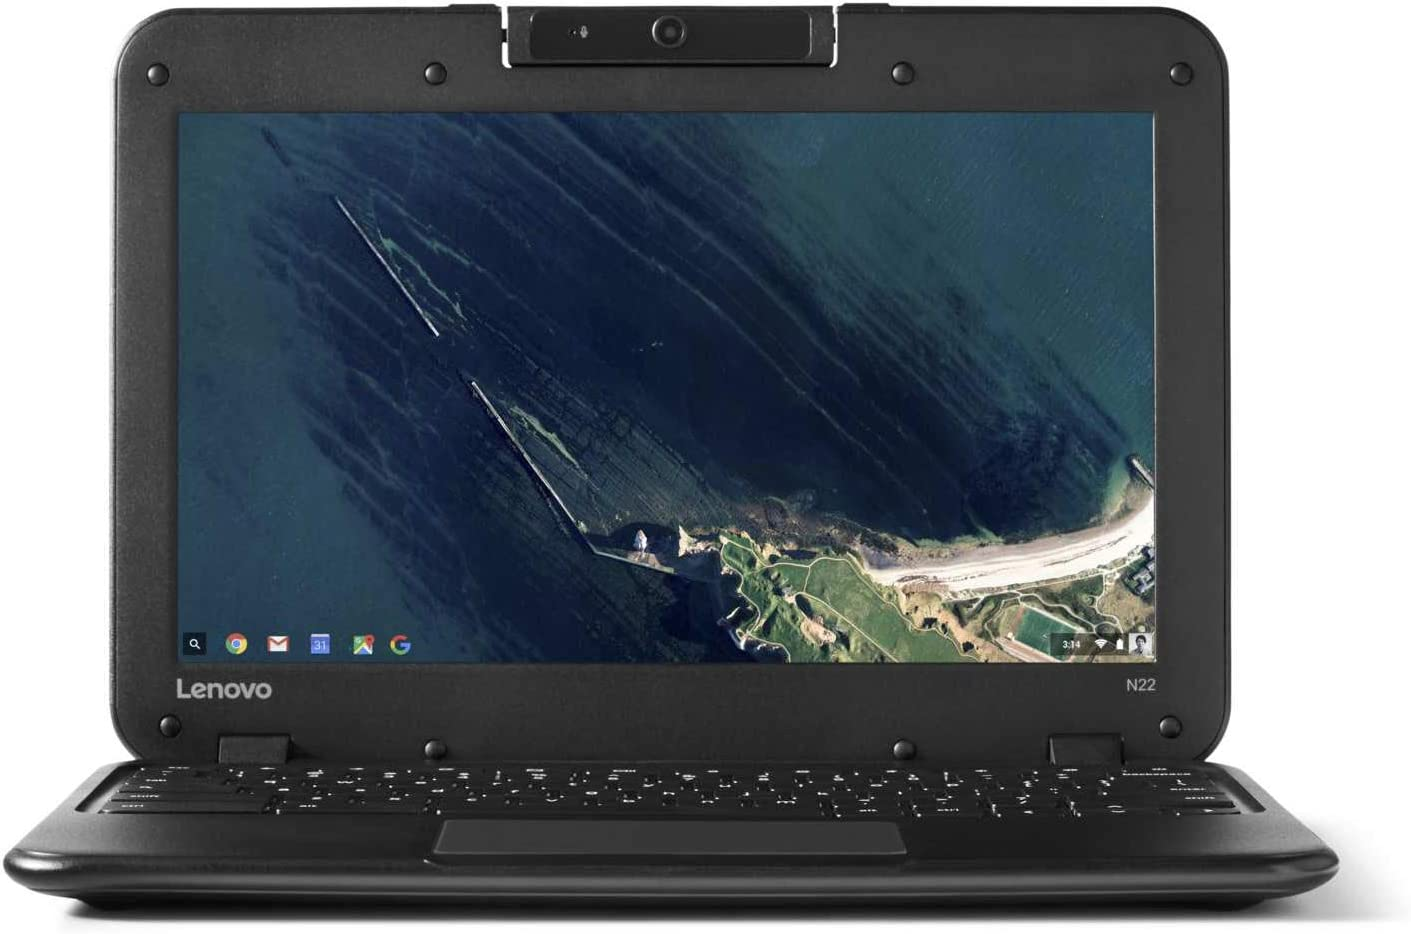 Lenovo N22 Chromebook Laptop